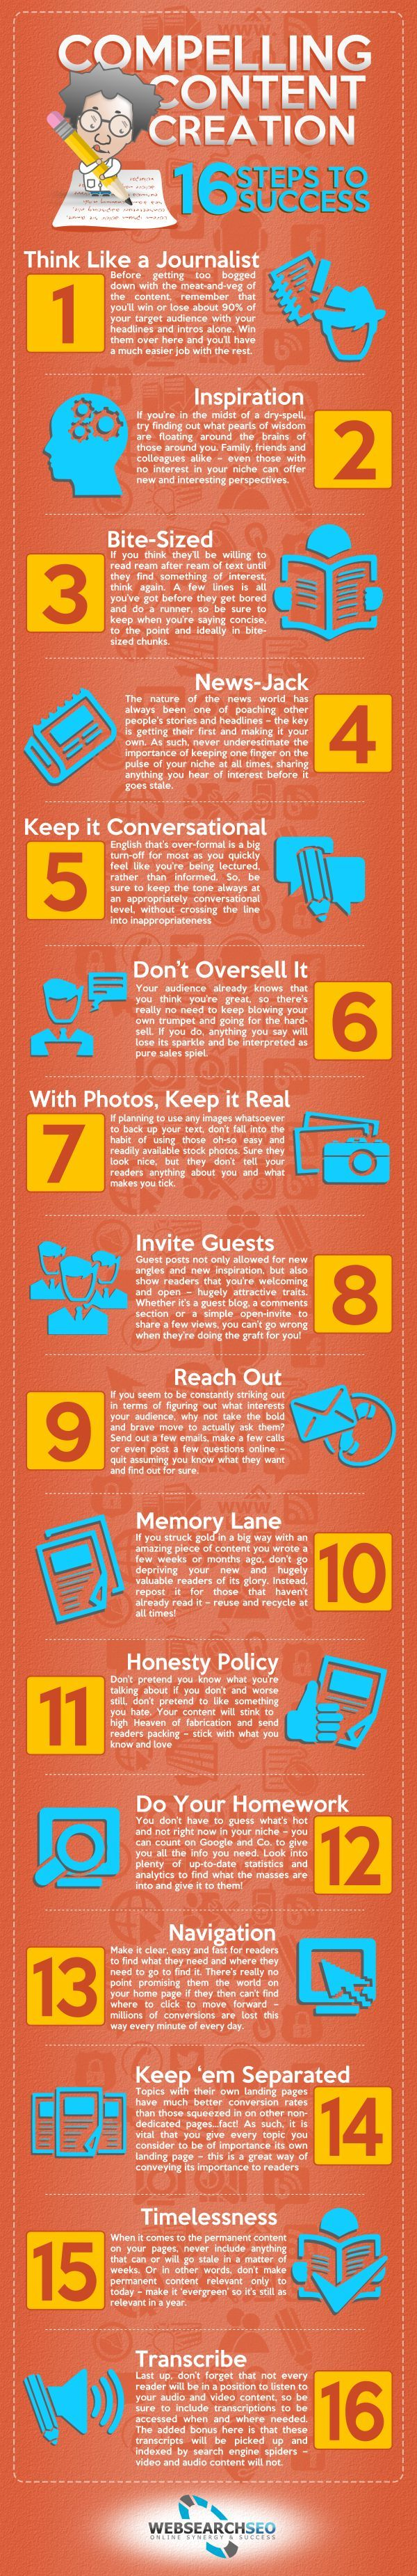 16 steps to successful content marketing. #content#marketing Visit : www.sourcepep.com/80-20-blog/